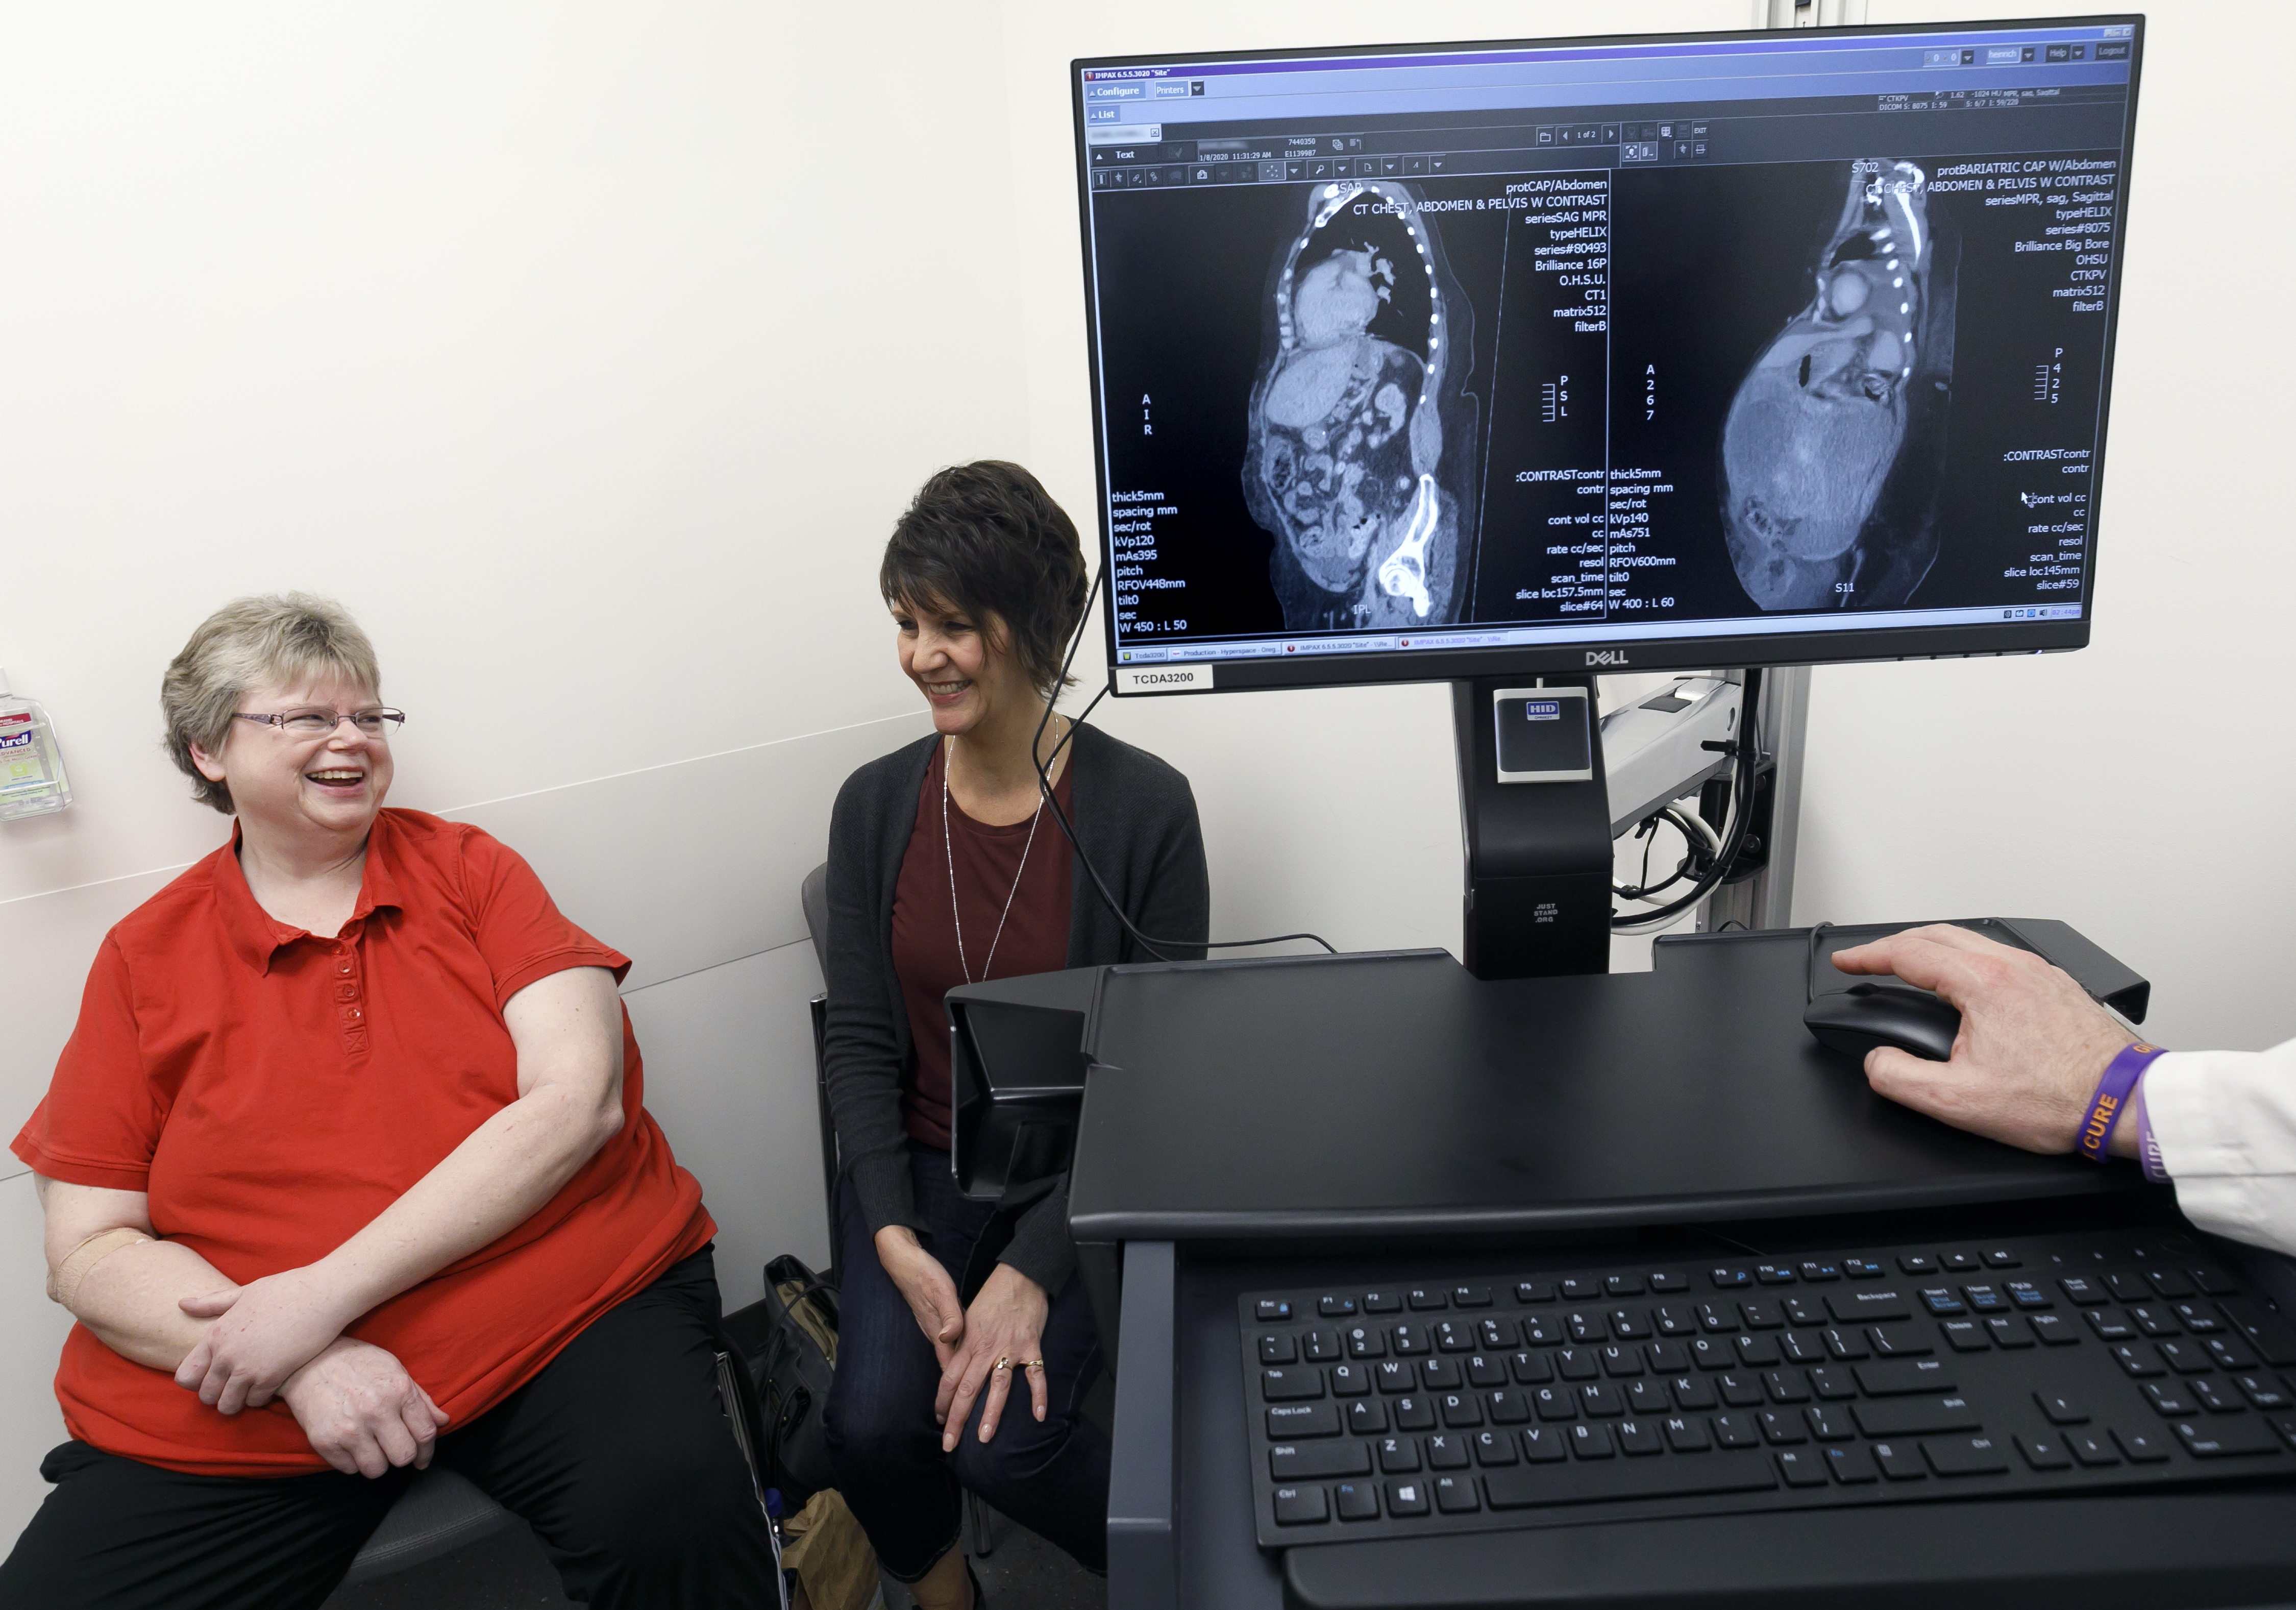 two women, seated and talking with another, with a computer monitor on the right side of the picture showing two xray scans, before and after, of the patient